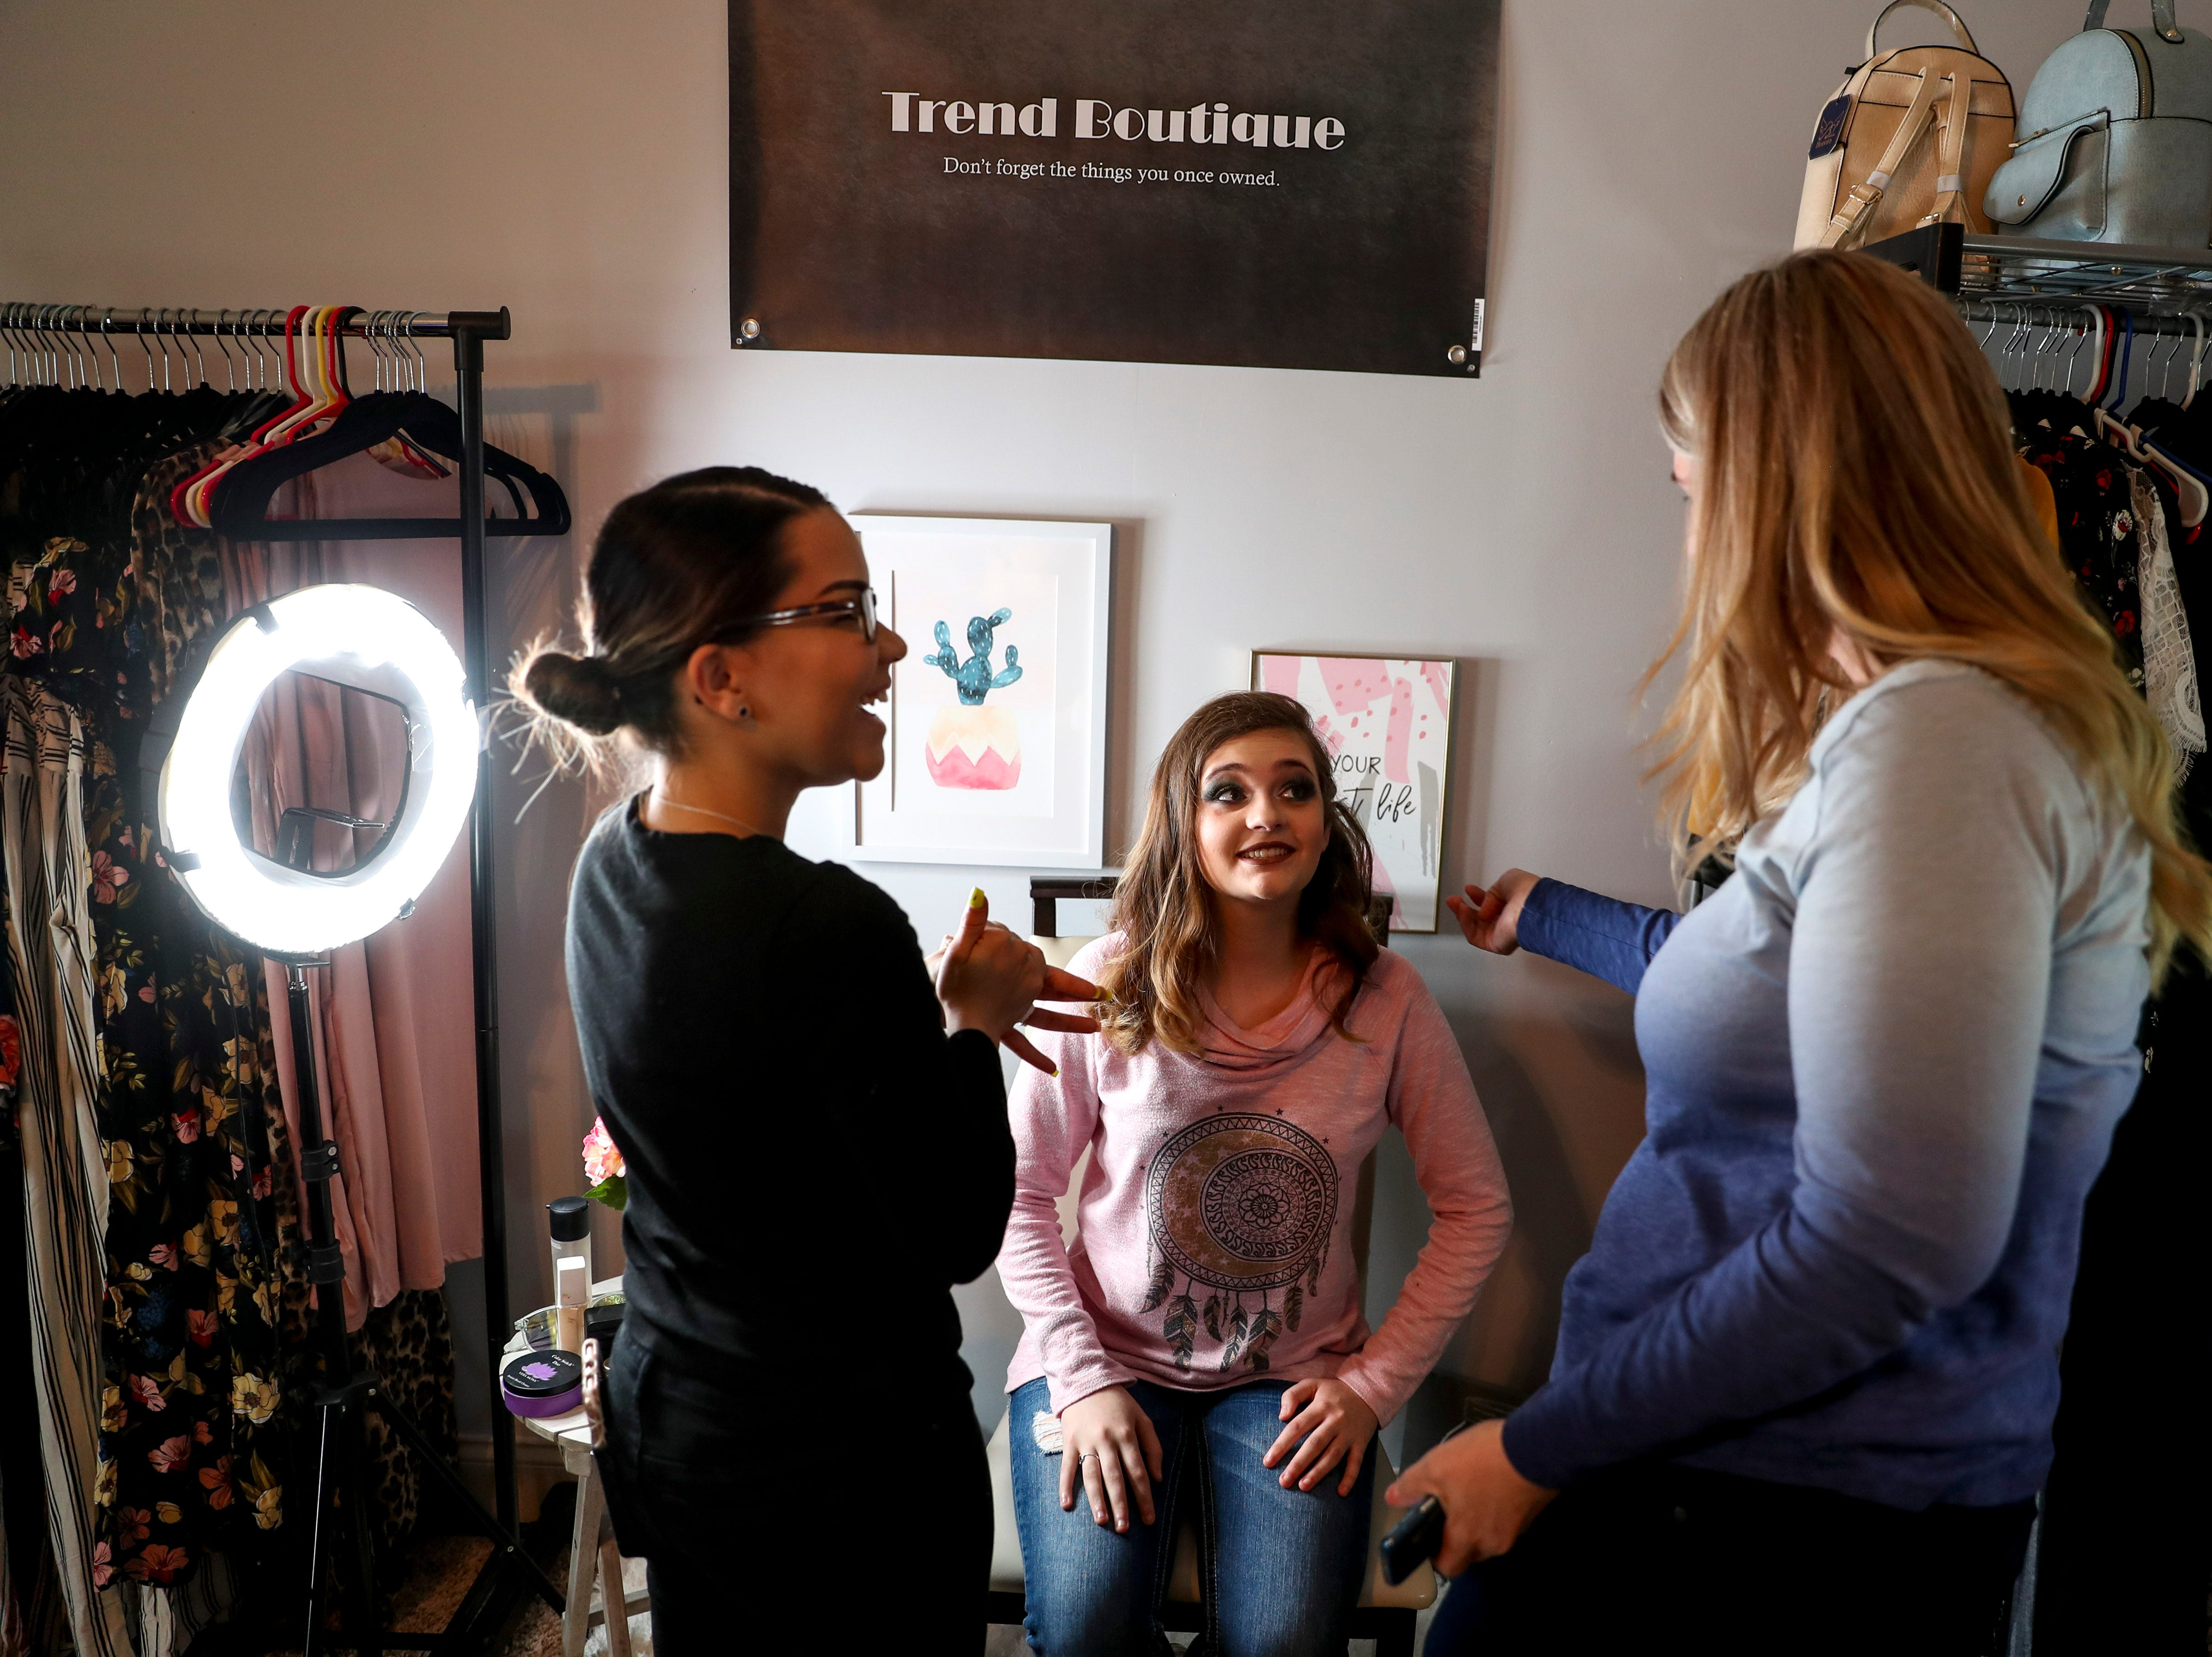 Madison Russell, center, looks up to her mom Dessarae Russell, right, after the finishing touches of makeup are put on by Miloshky Rodriguez, left, at the Tejada household in Clarksville, Tenn., on Saturday, May 4, 2019.